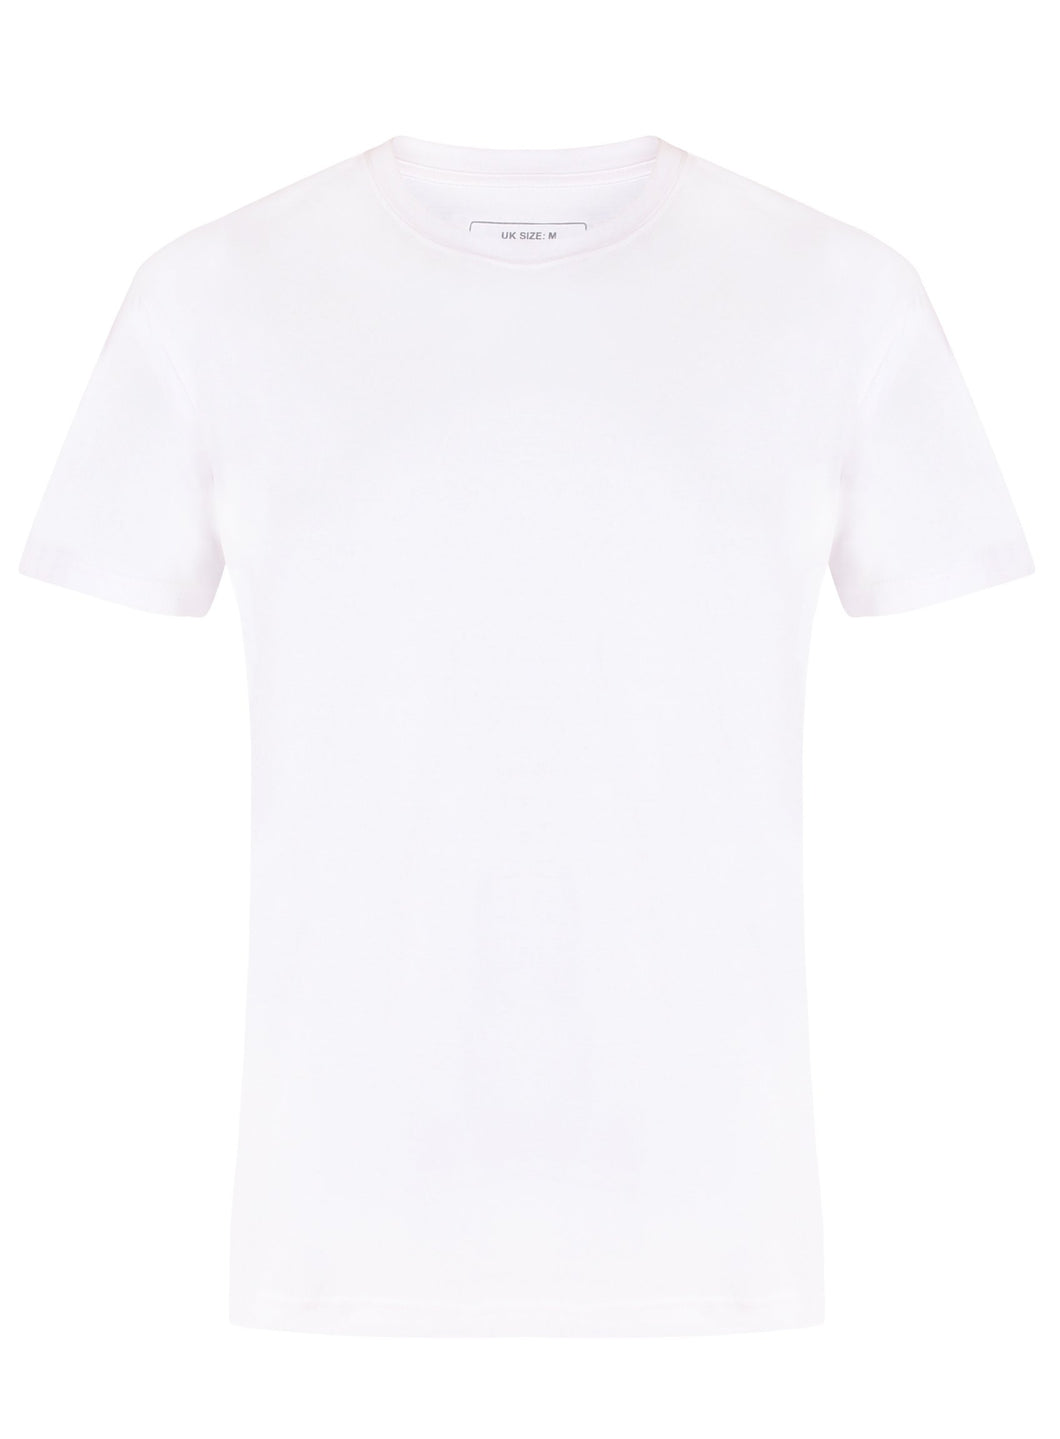 Premium T - Shirts Gazelle Sports UK Yes XS White